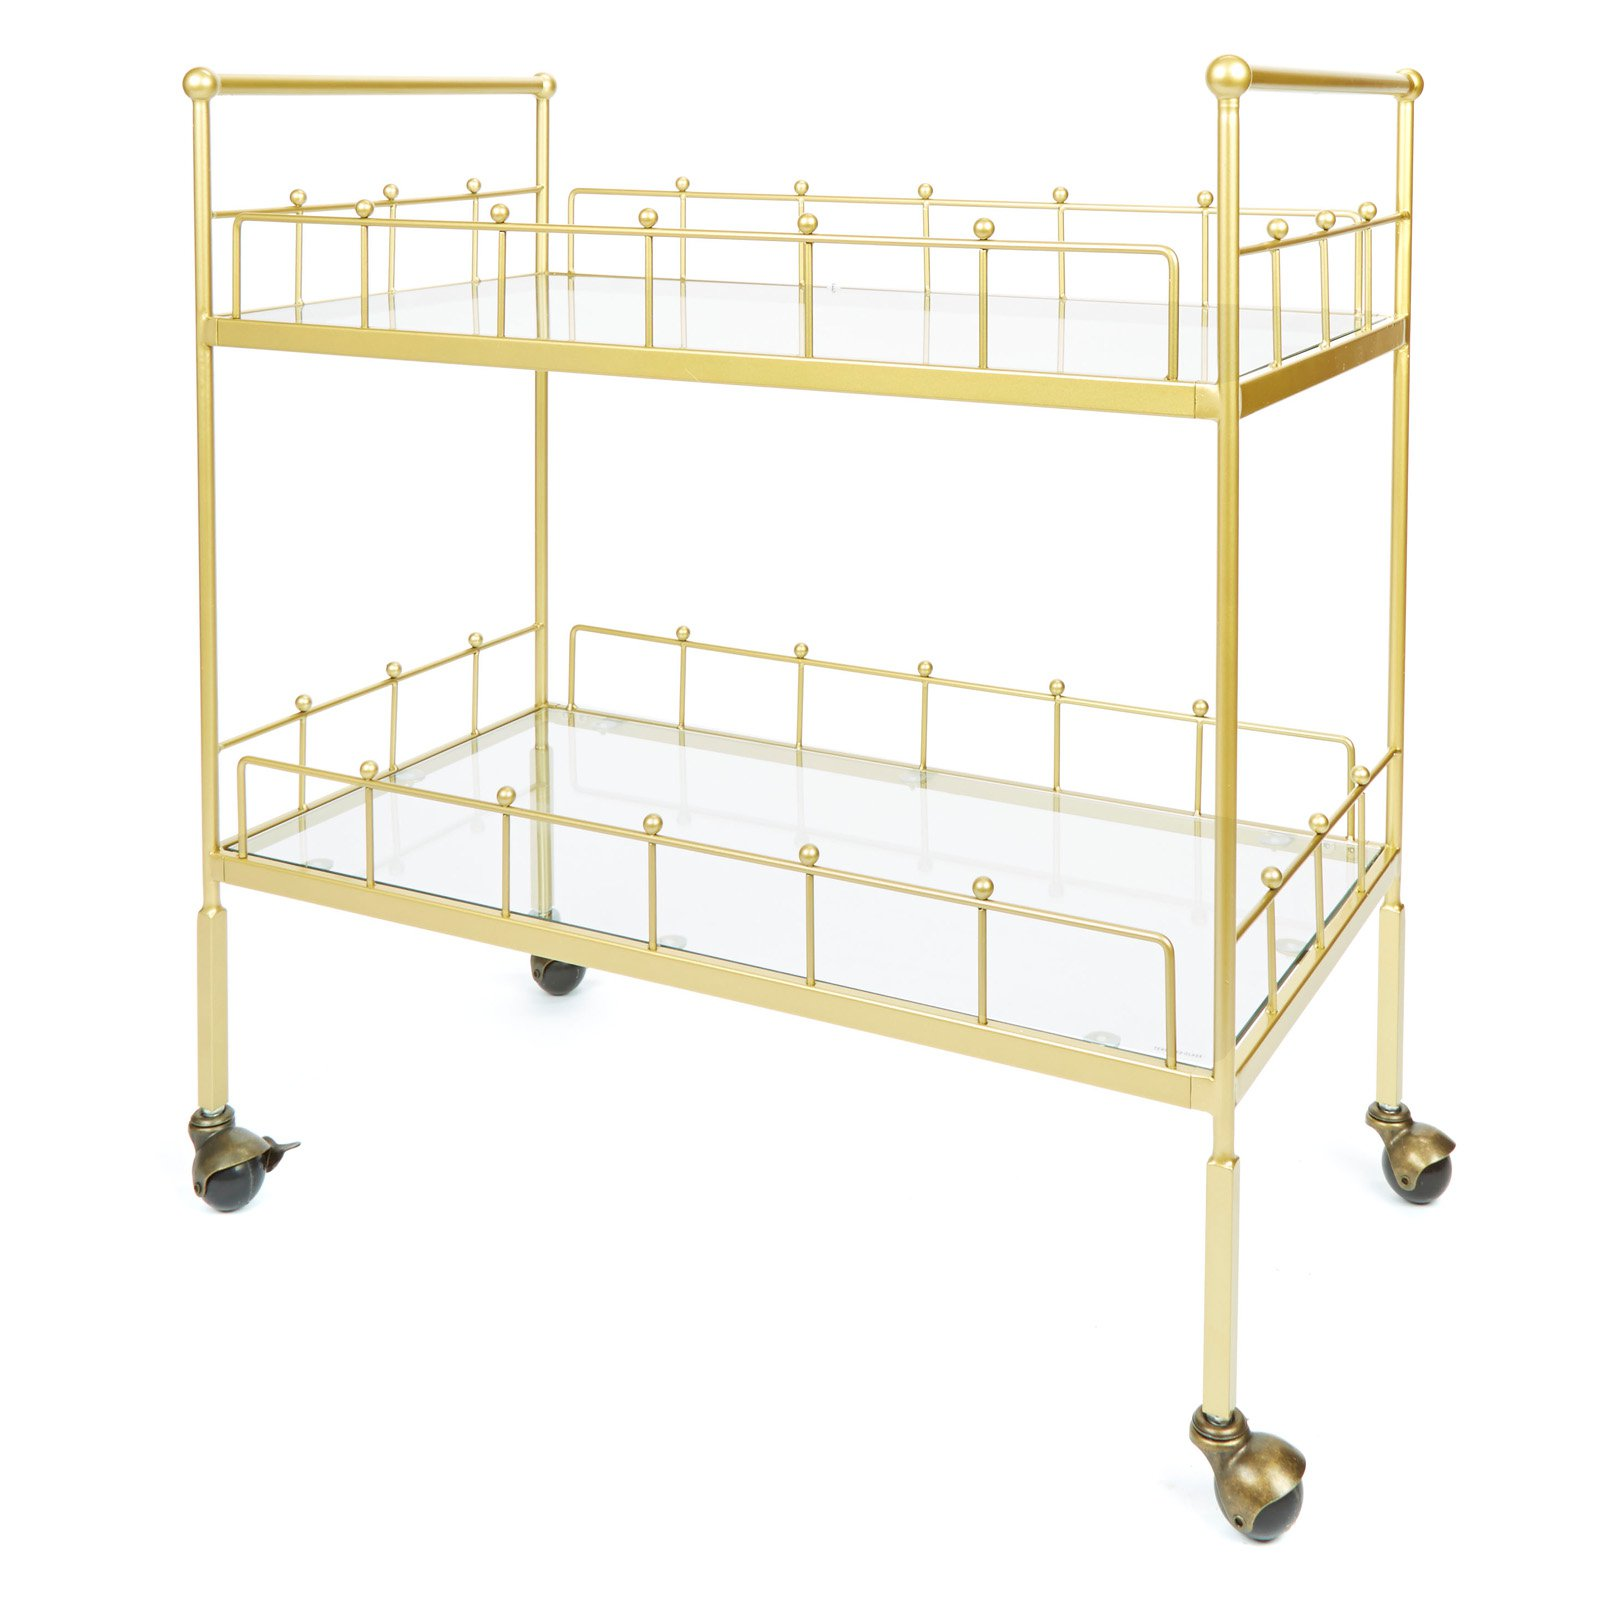 Fitz 2-Tier Rectangular Serving Cart in Gold